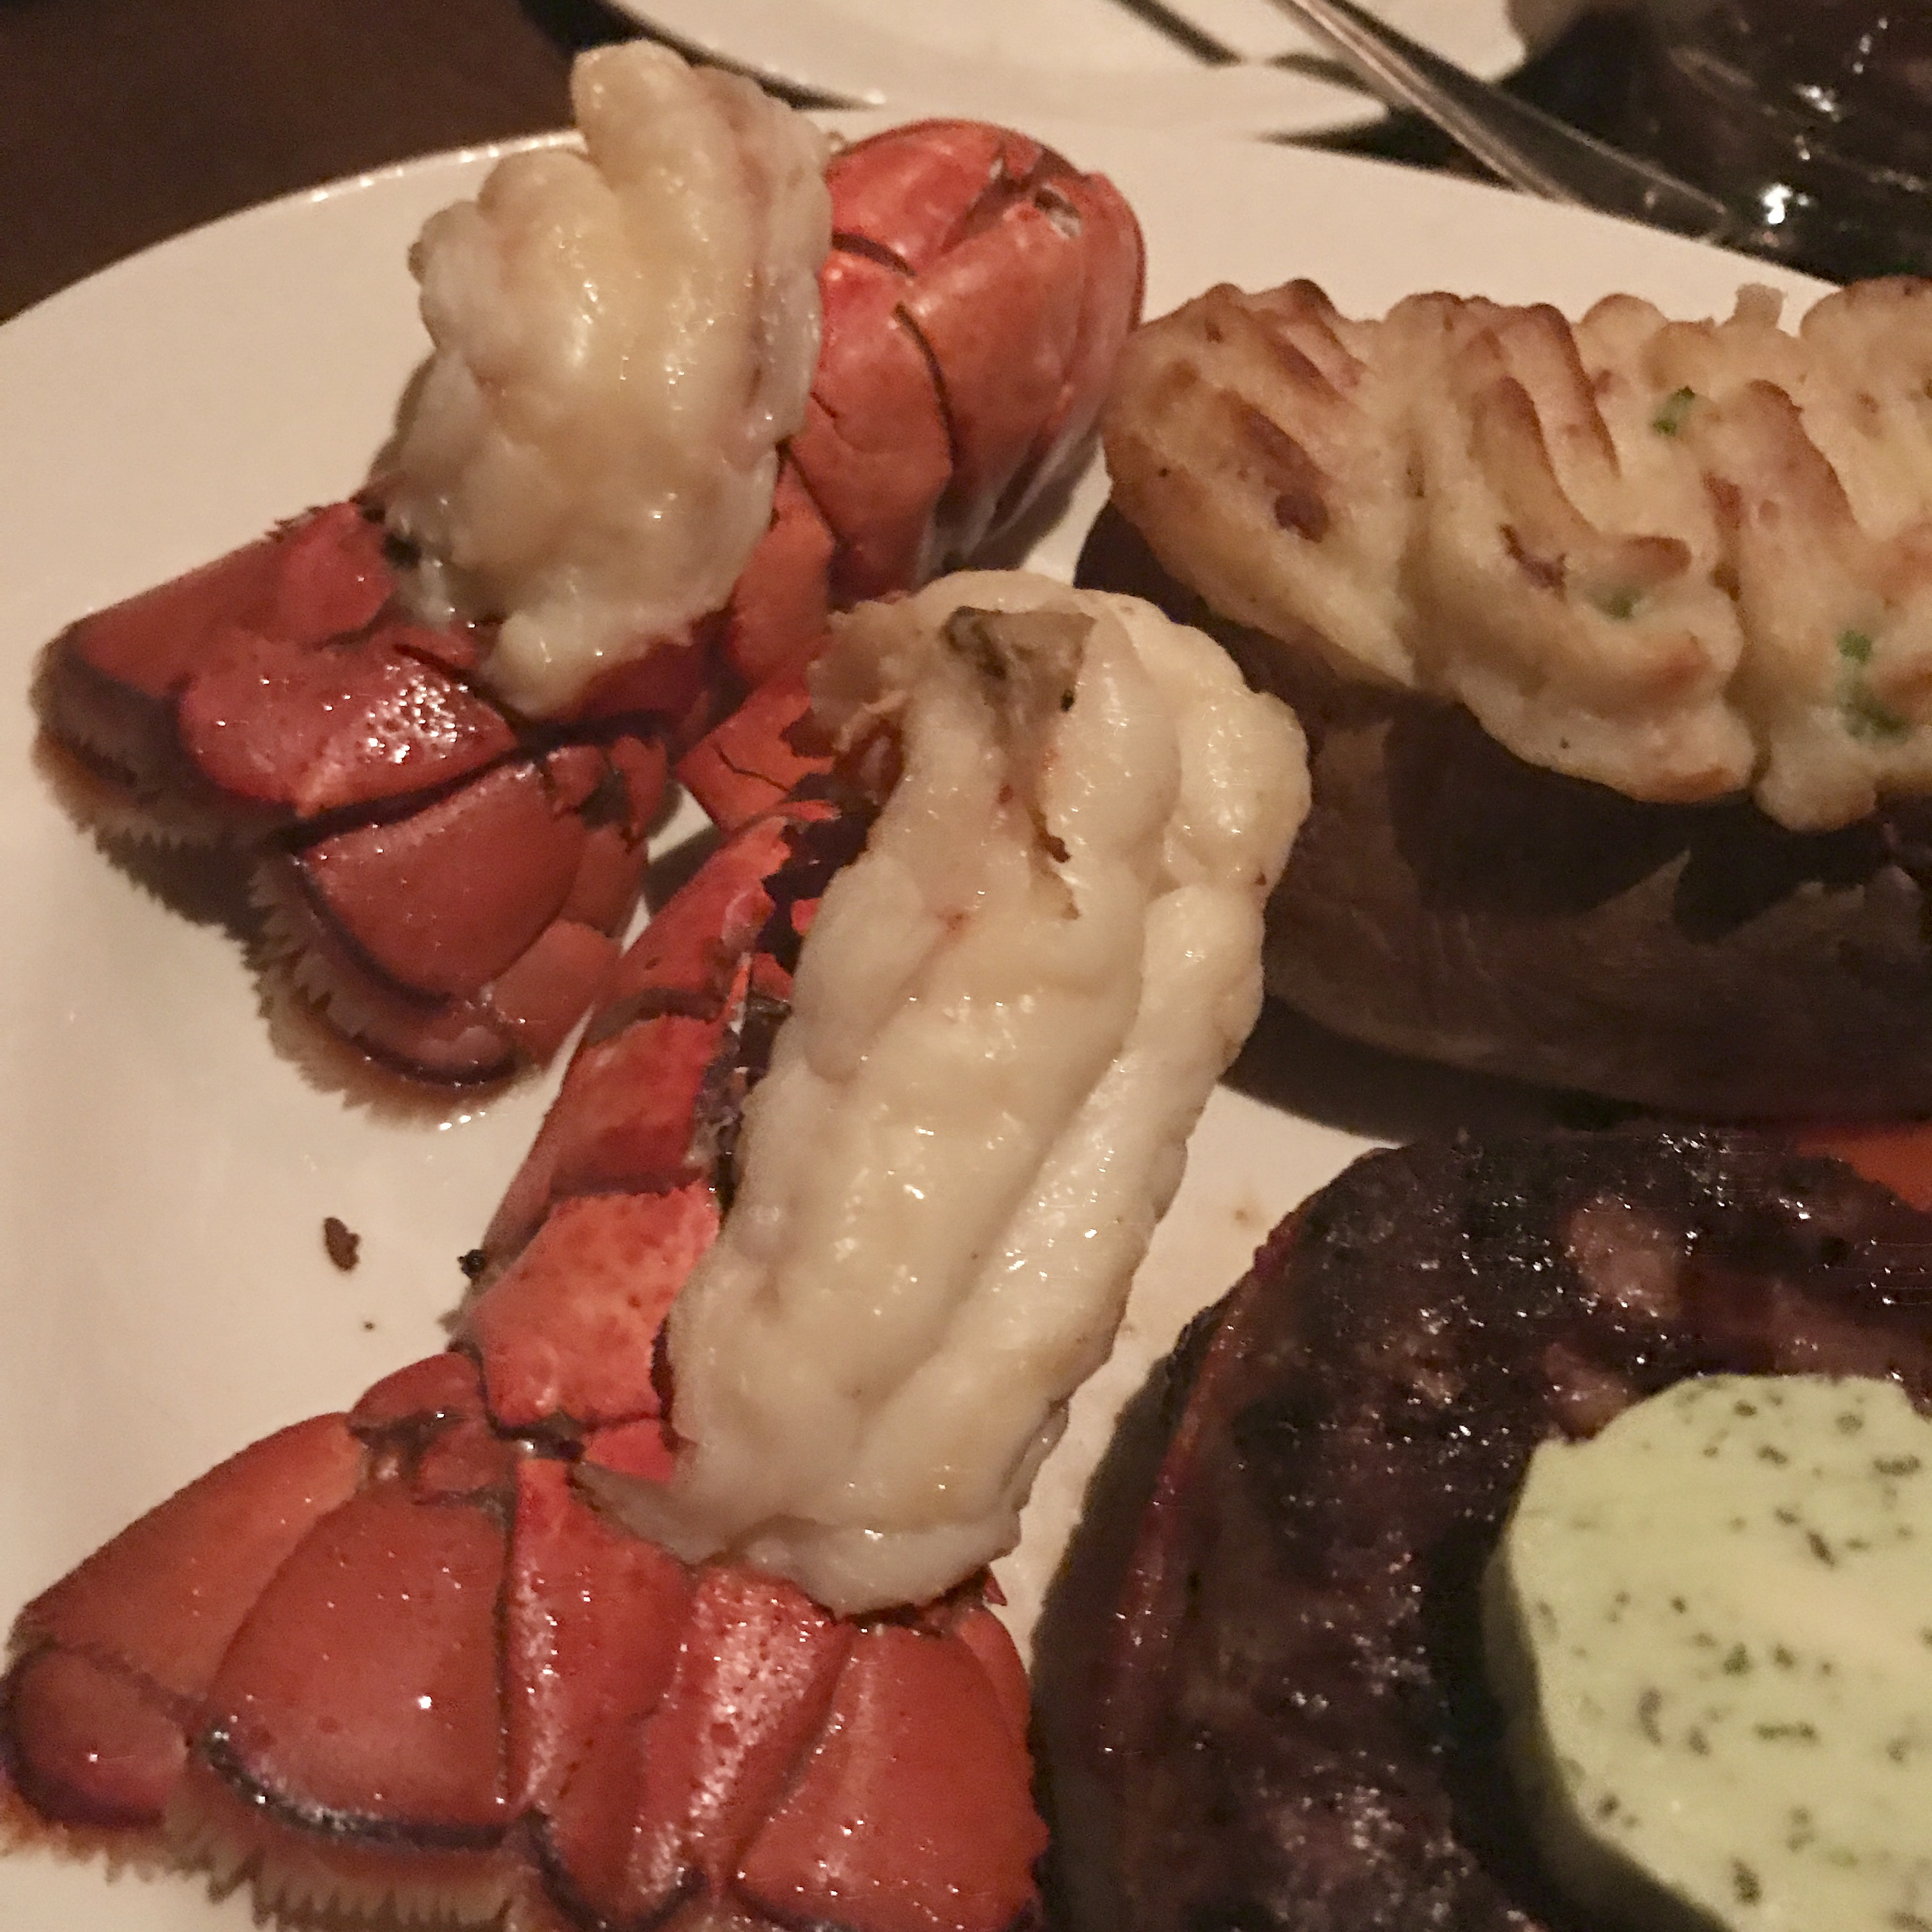 The Keg lobster tails with filet mignon